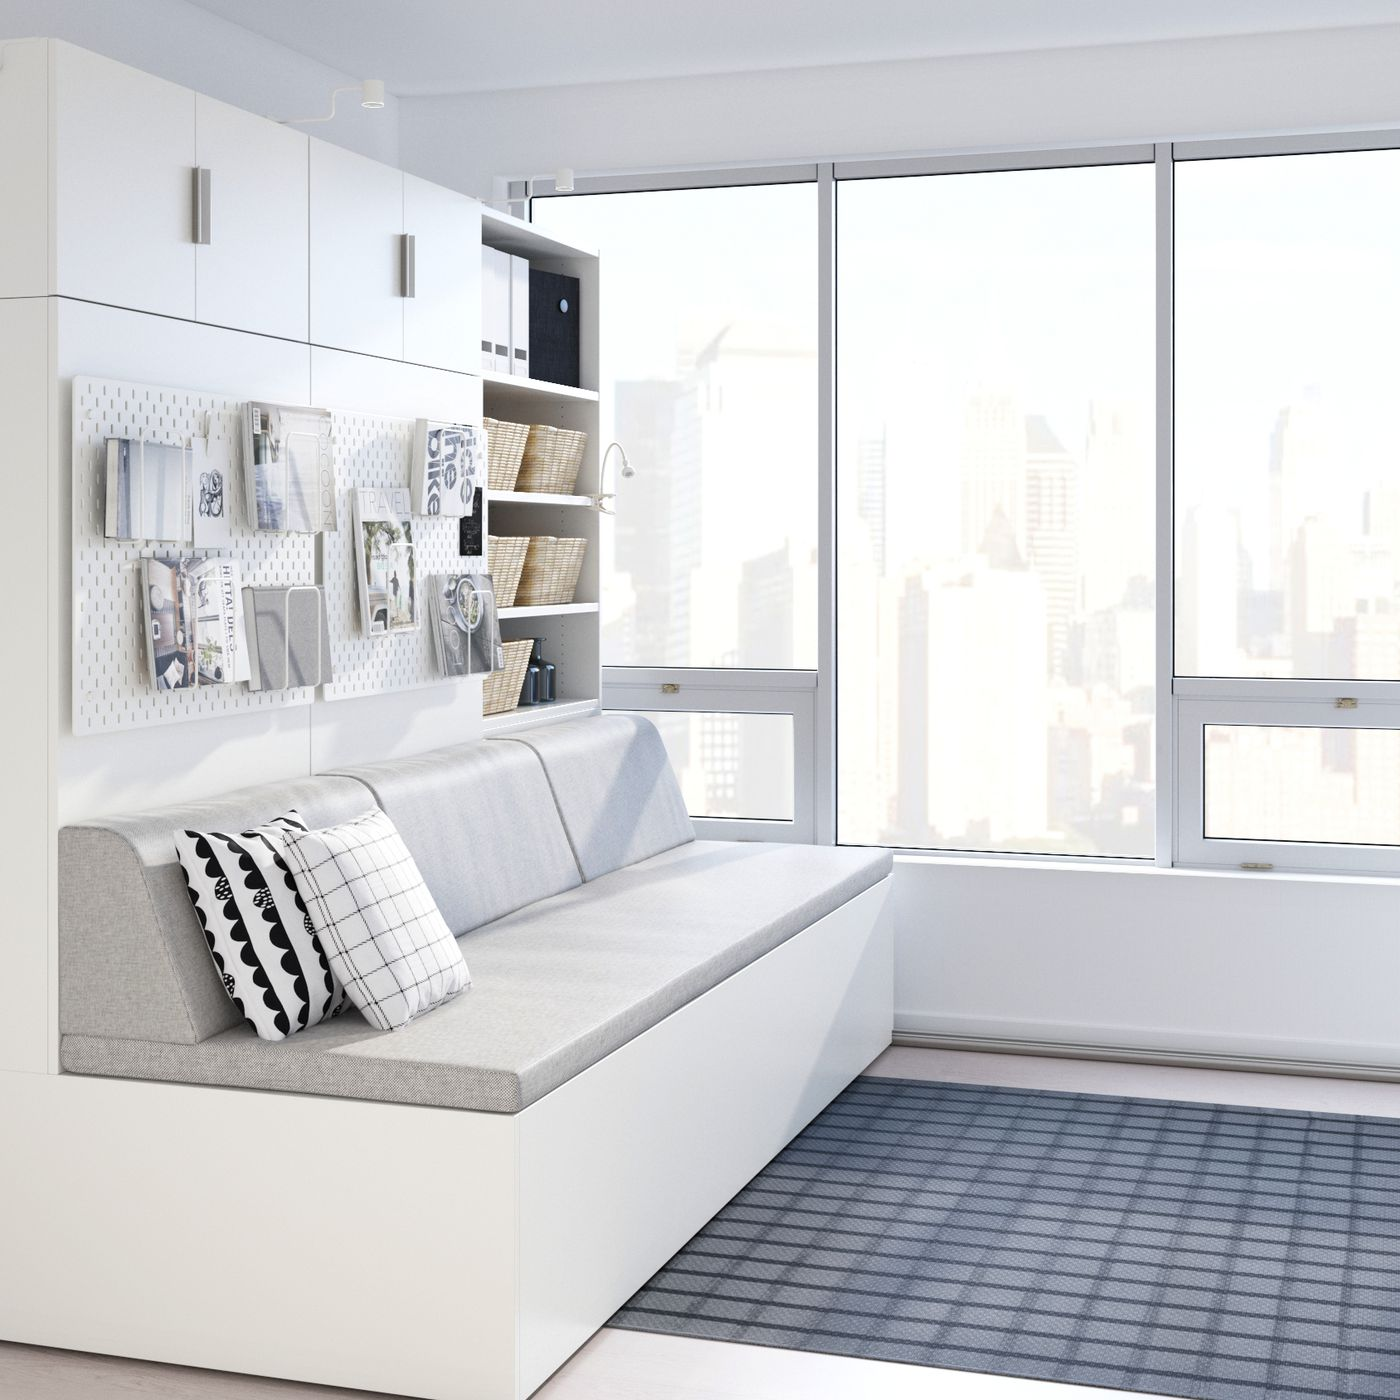 Ikea Is Introducing Robotic Furniture For People Who Live In